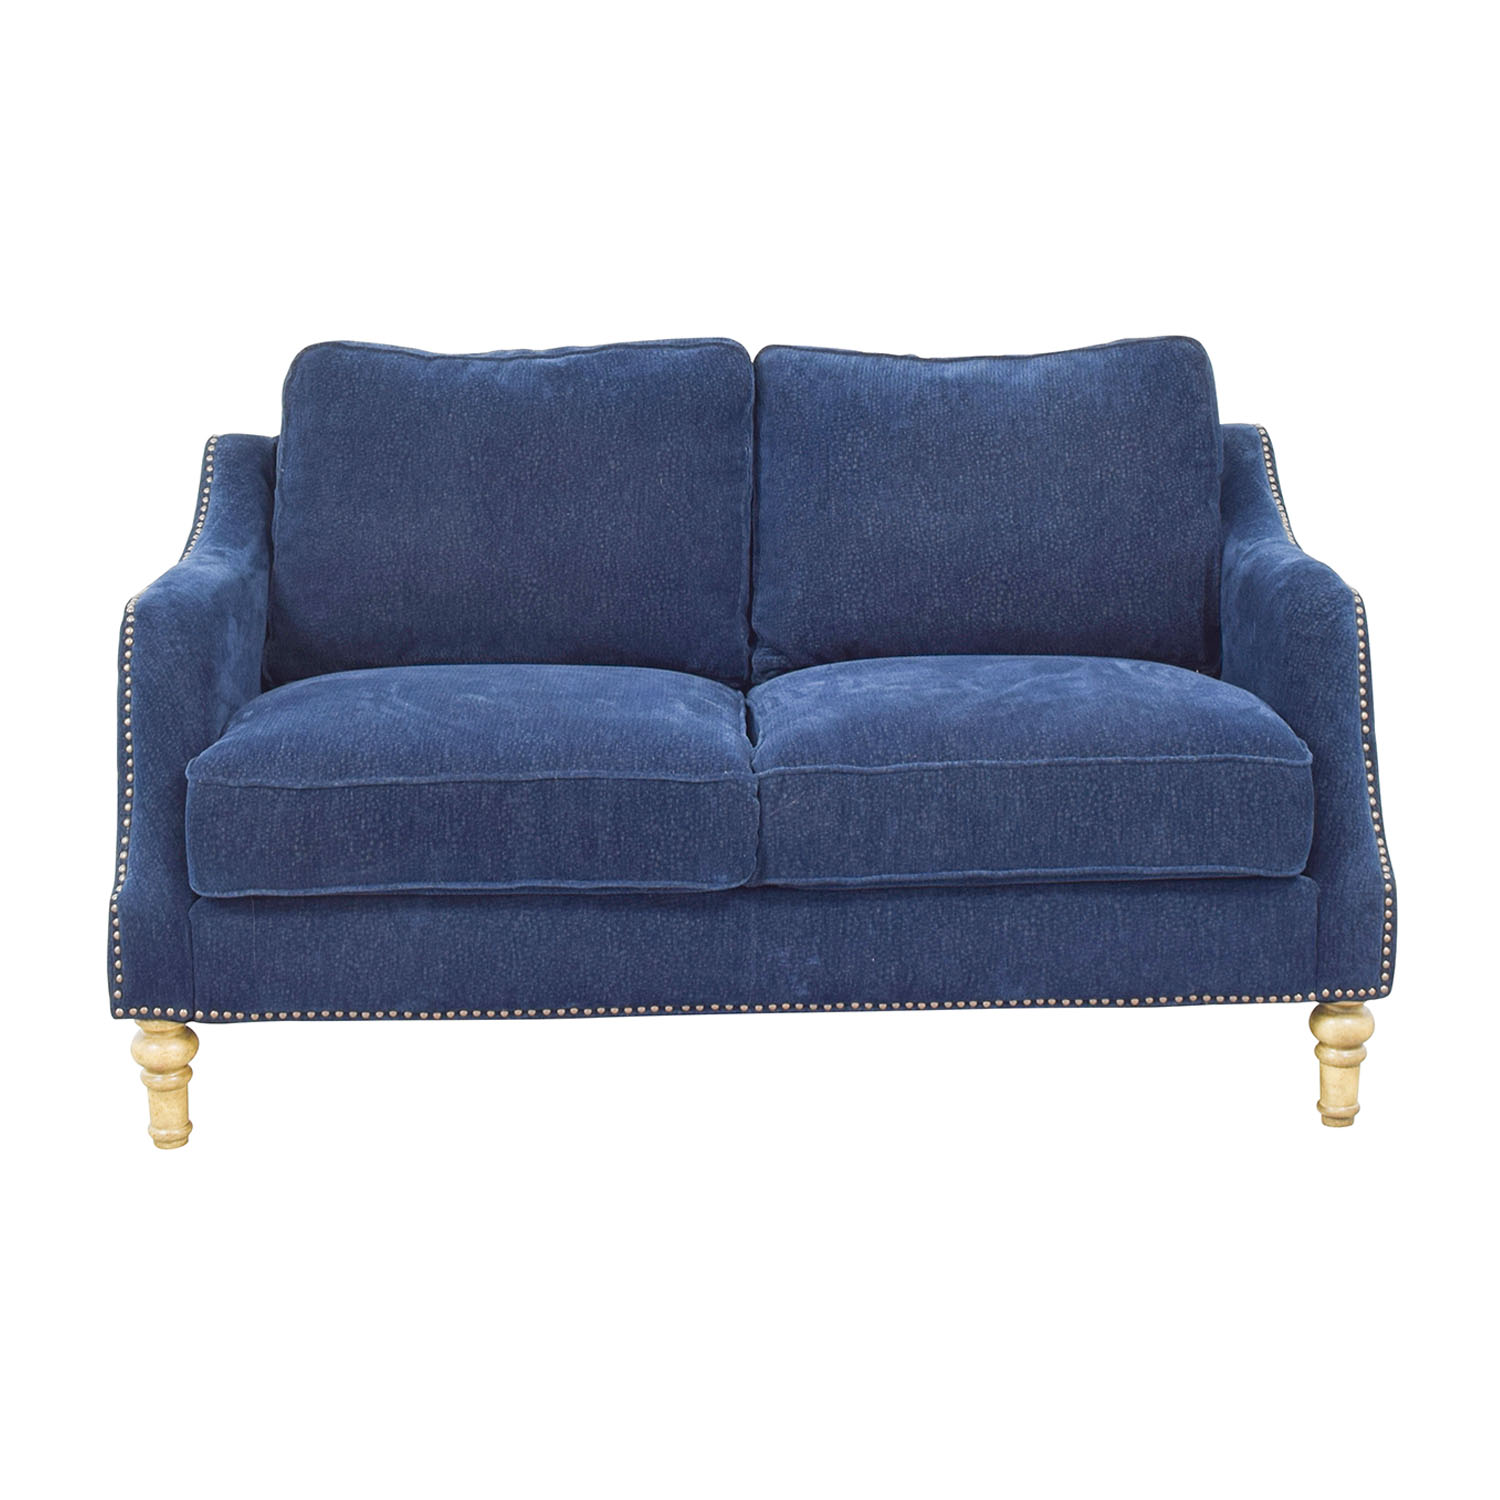 Mayfair Navy Nailhead Two-Cushion Loveseat dimensions